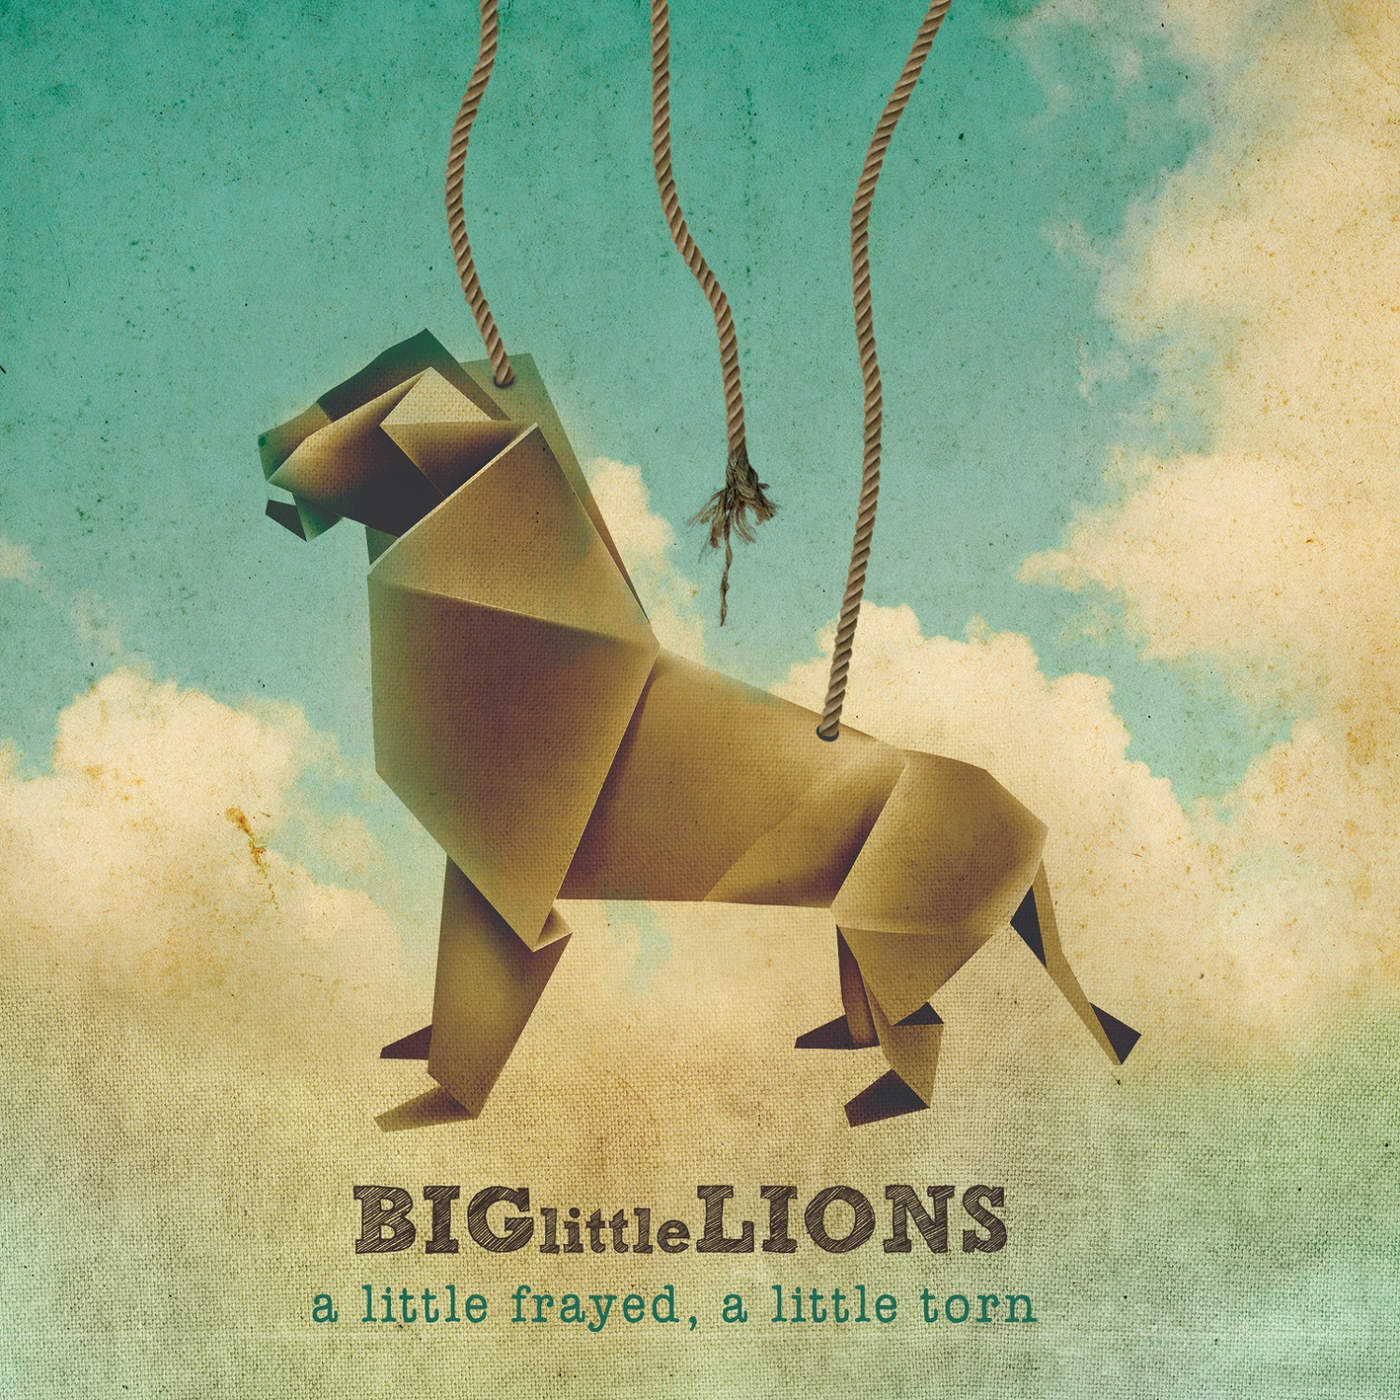 Art for The Time Is Now by Big Little Lions